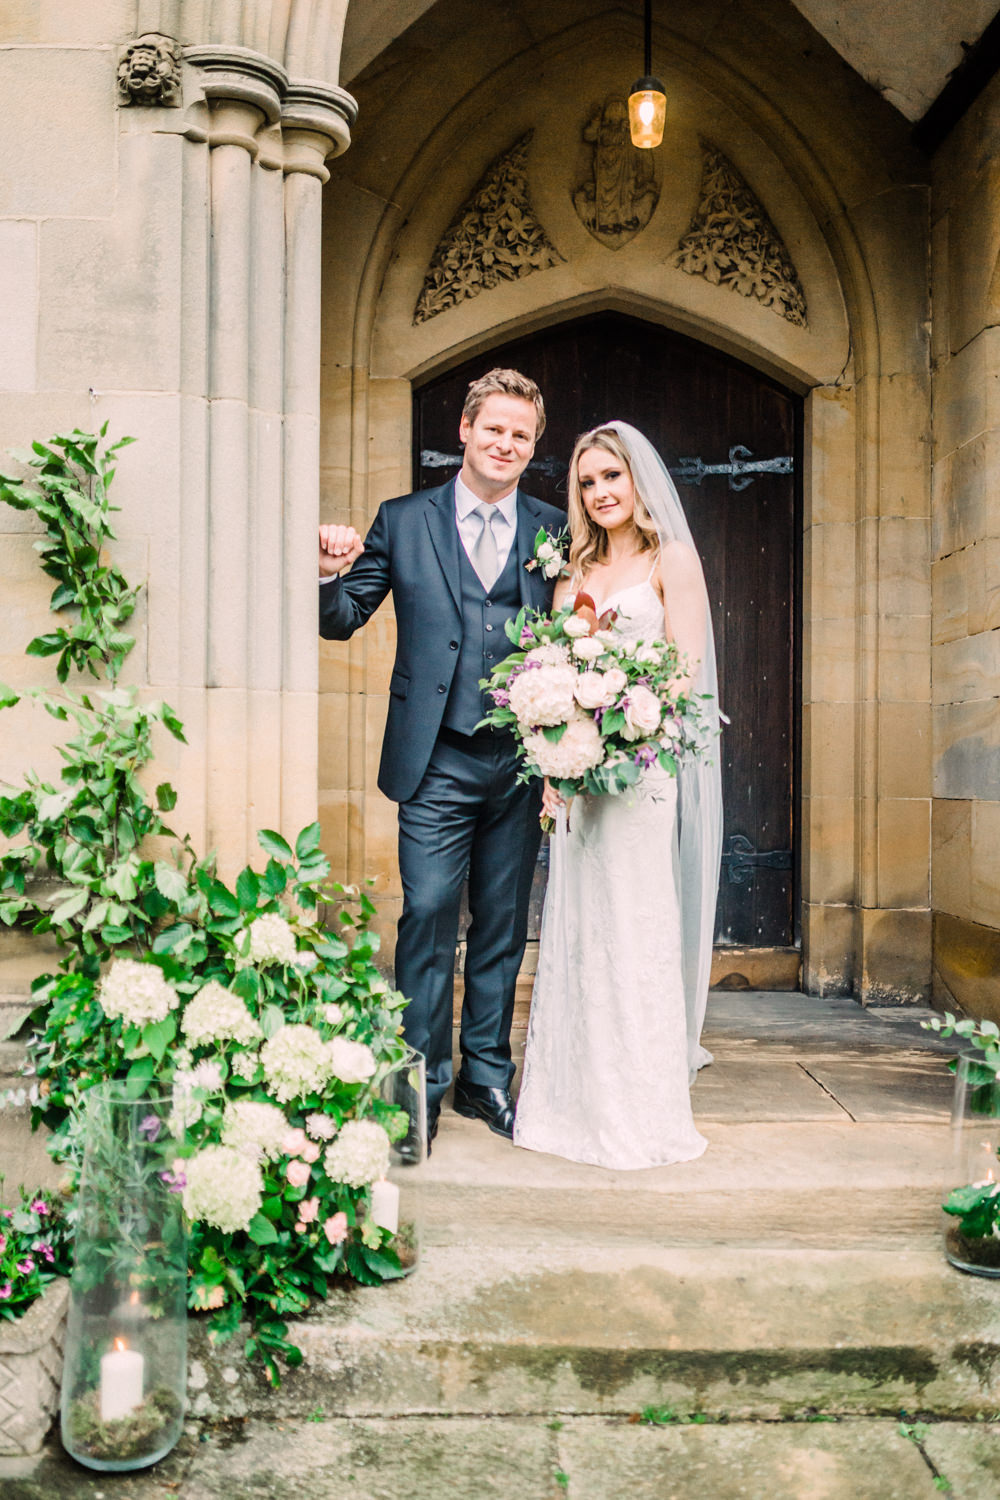 Church Entrance Flowers Hydrangea Rose Greenery Foliage Eucalyptus Arch Door Candles Pheasant Harome Wedding Yorkshire Arabella Smith Photography